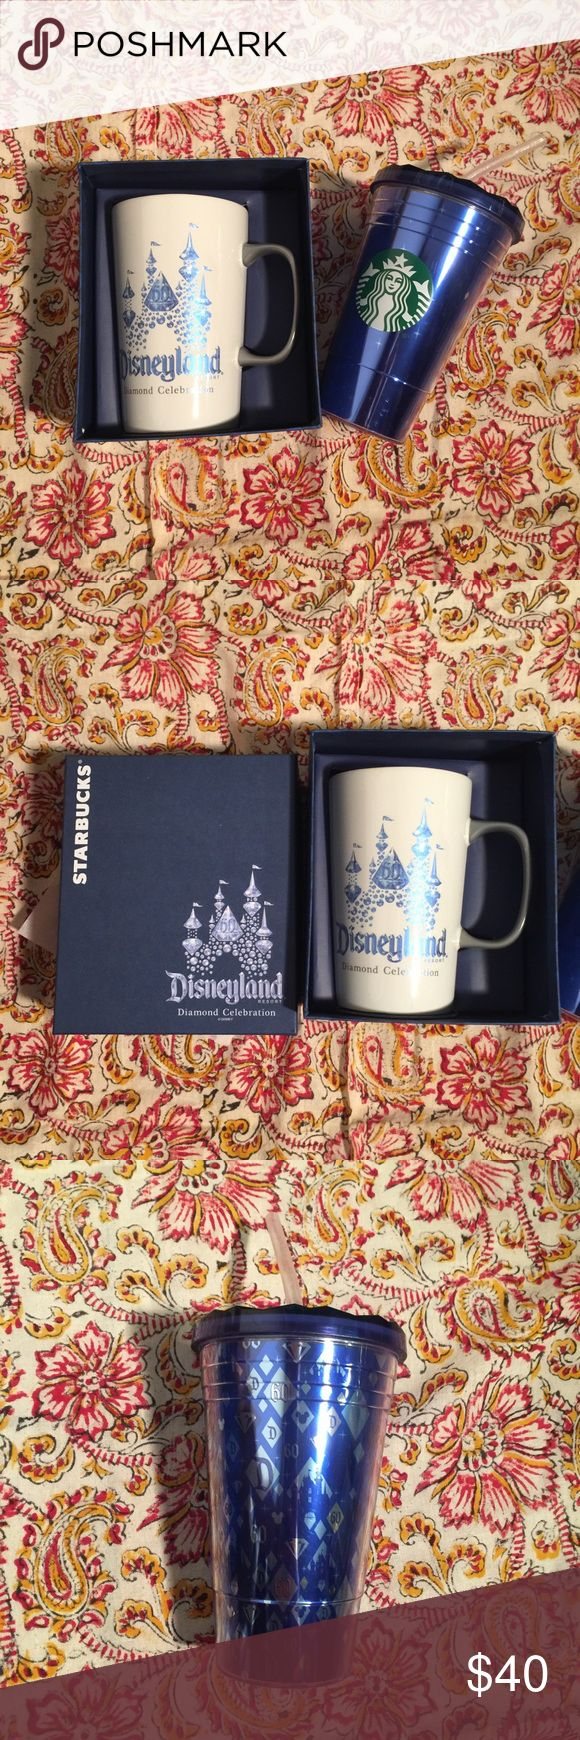 Starbucks Disneyland 60th Anniversary Mug Tumbler Set of 2 Disneyland Diamond Celebration coffee mug and travel tumbler. Limited edition for the 60th anniversary celebration. Coffee mug has the Disney castle on one side and Starbucks logo on the other and the tumblr has the Starbucks logo and diamond pattern with diamond textured screw lid and straw. Both are brand new- mug in box. Starbucks Other